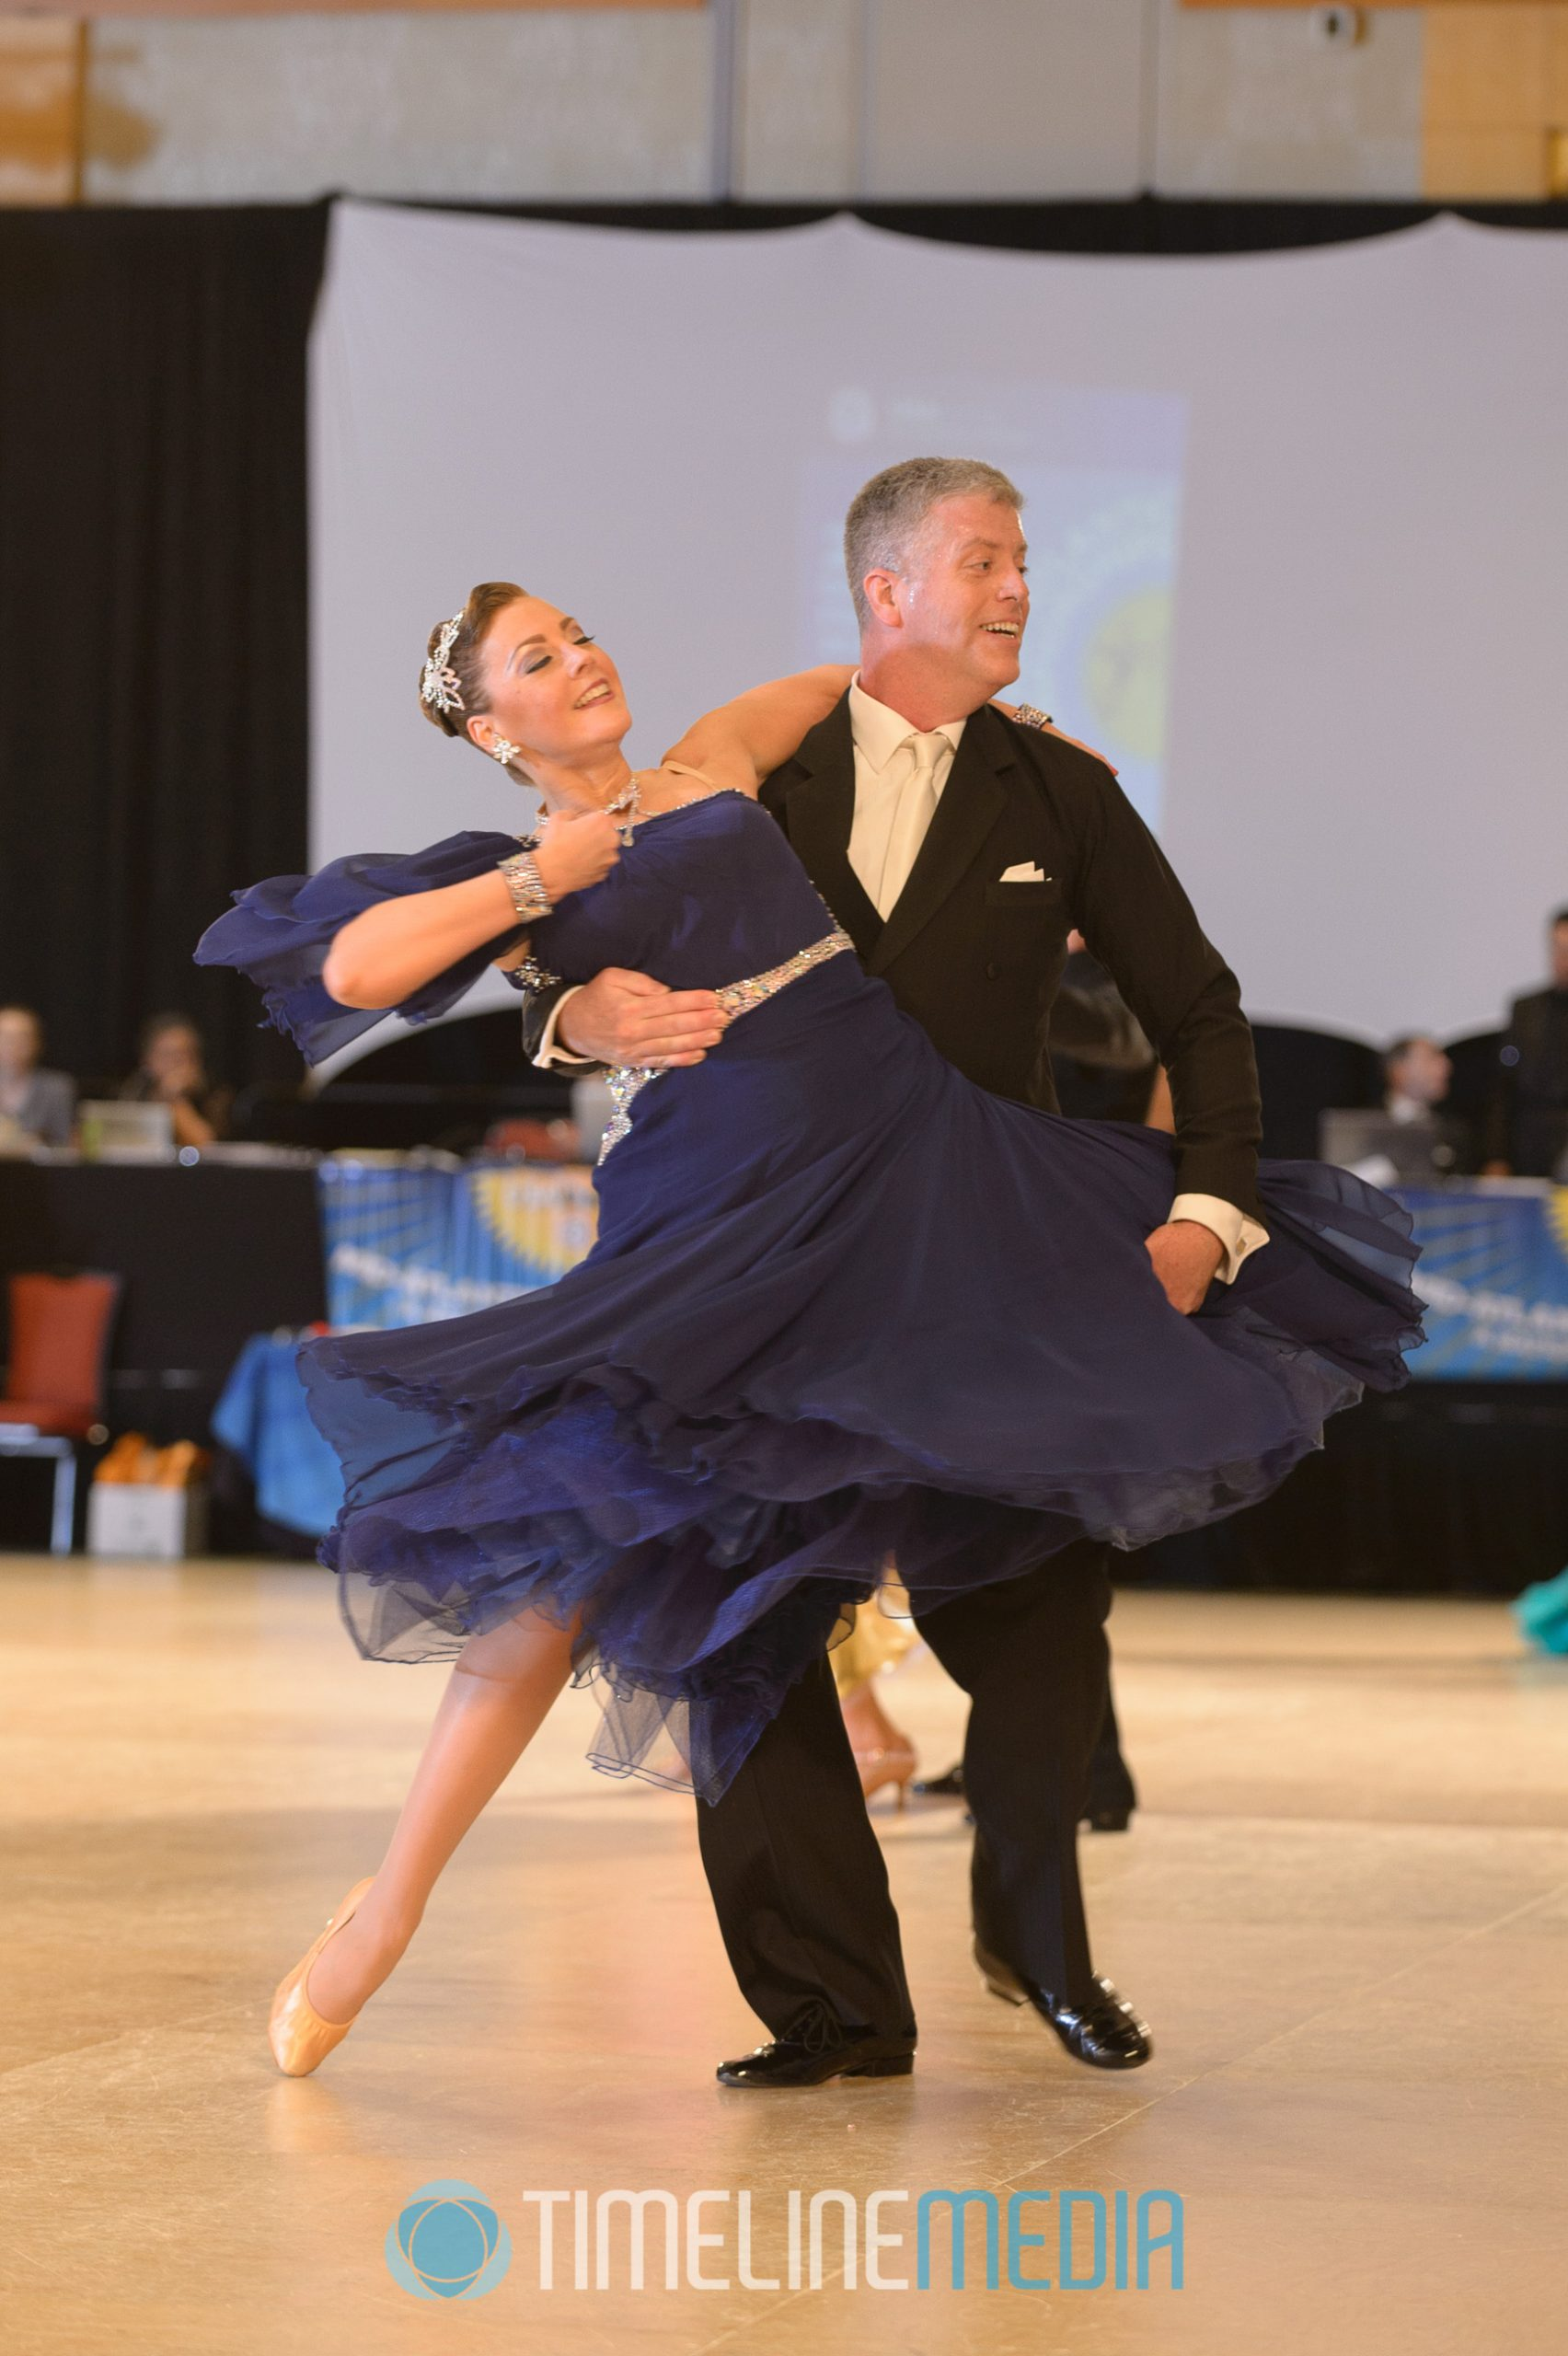 Ballroom Dance competition Bethesda, Maryland ©TimeLine Media